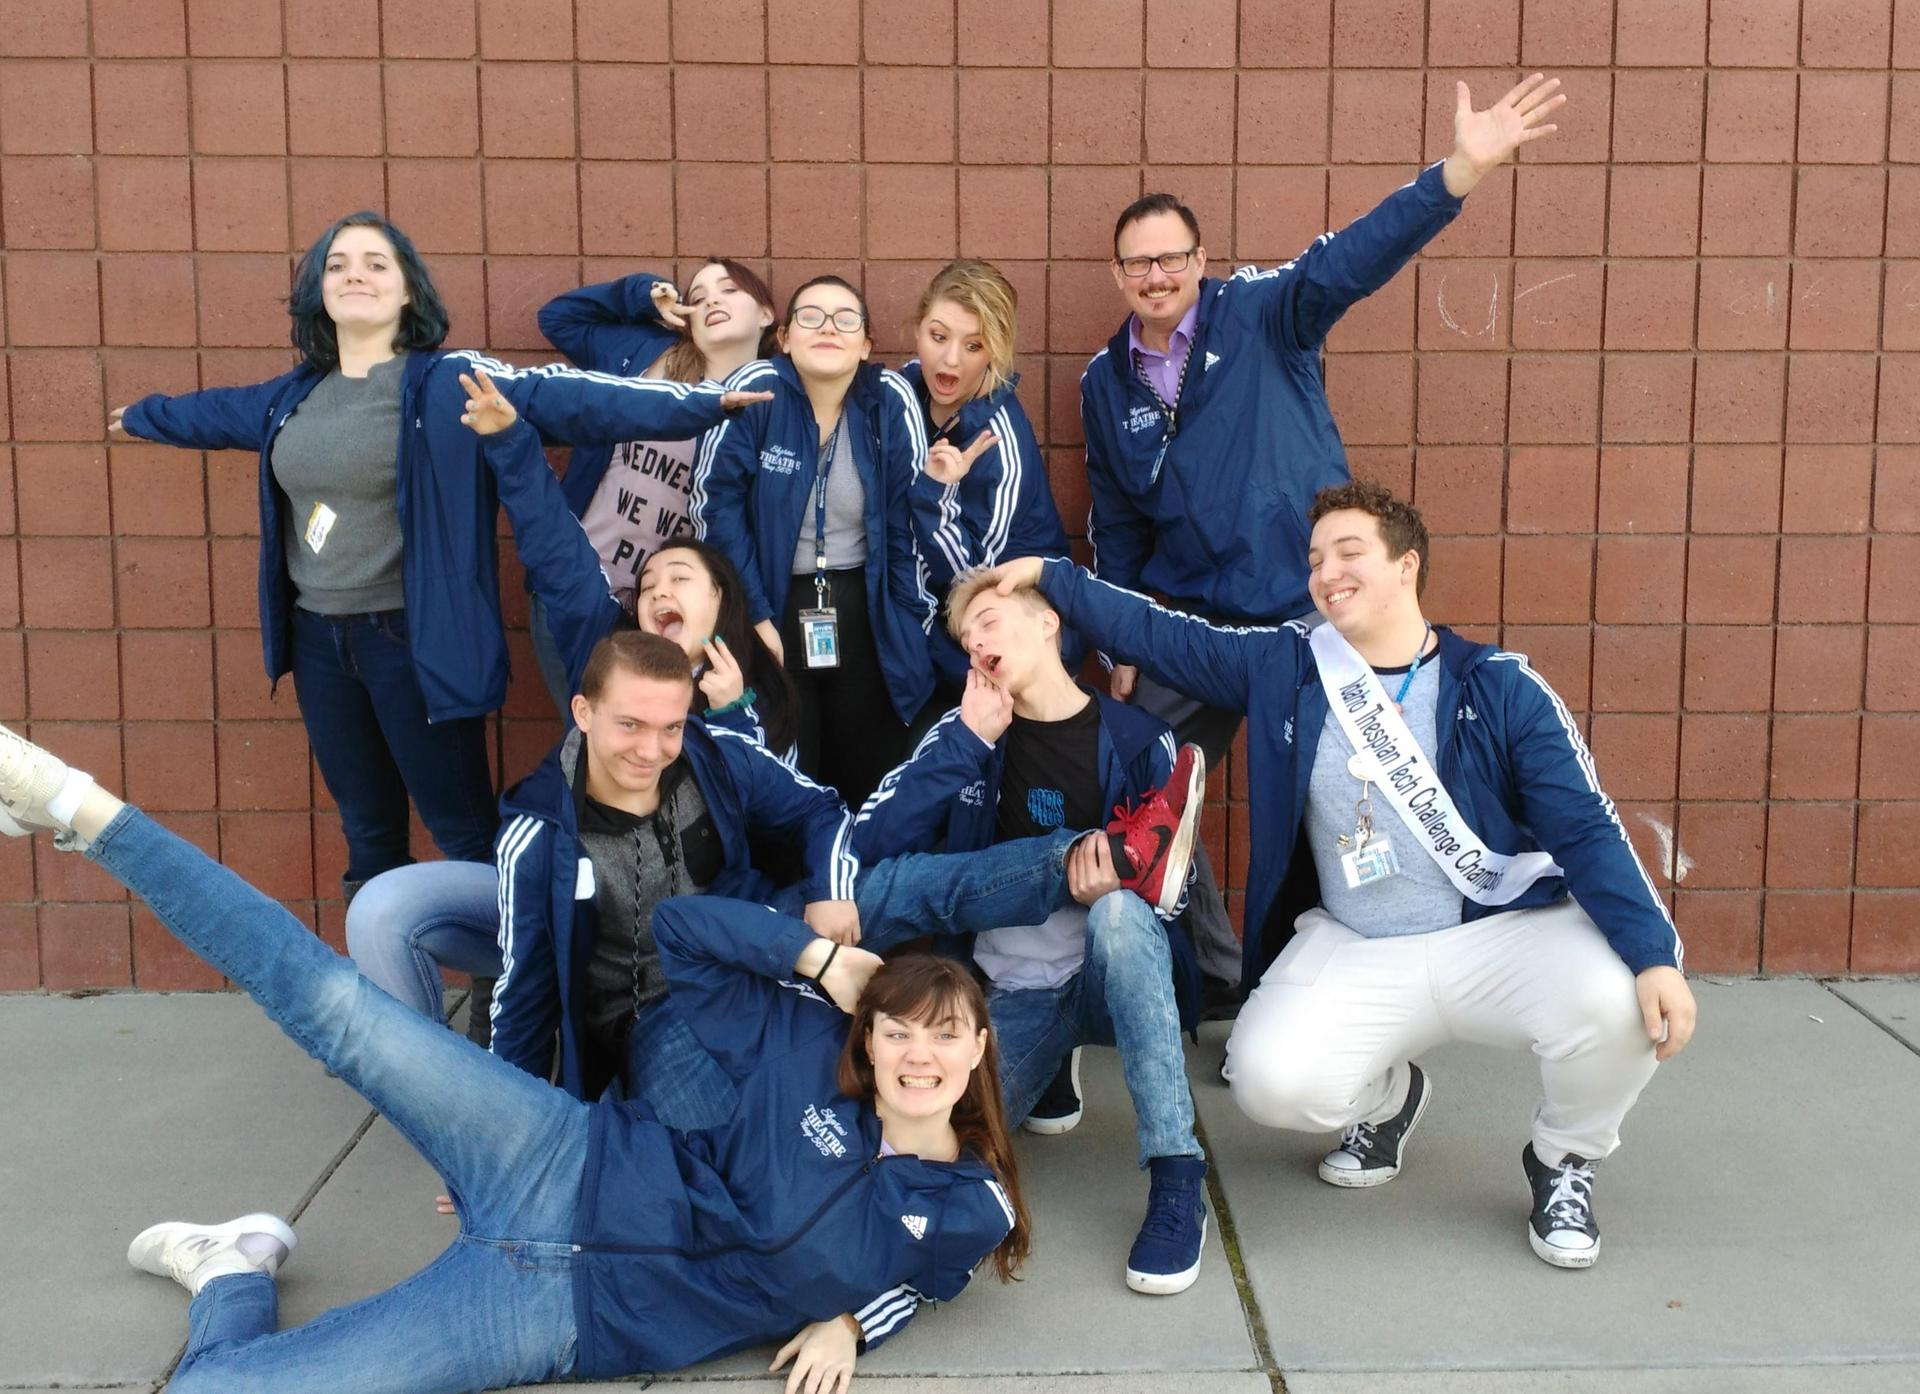 Drama students ham it up for the camera.